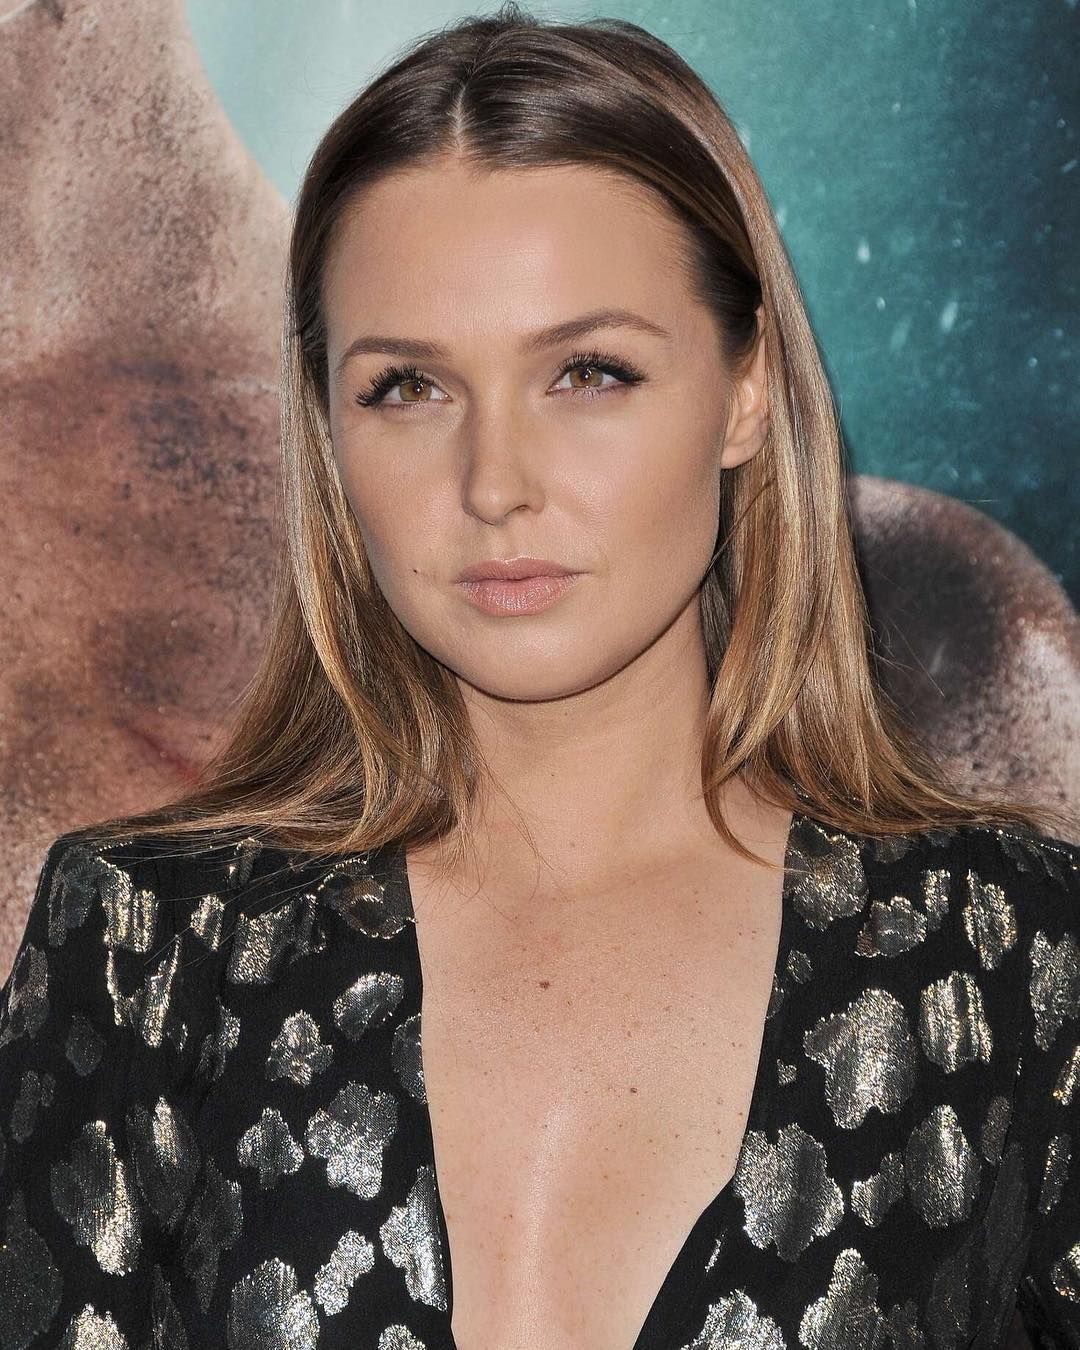 Instagram Camilla Luddington naked (44 photos), Ass, Is a cute, Instagram, braless 2019